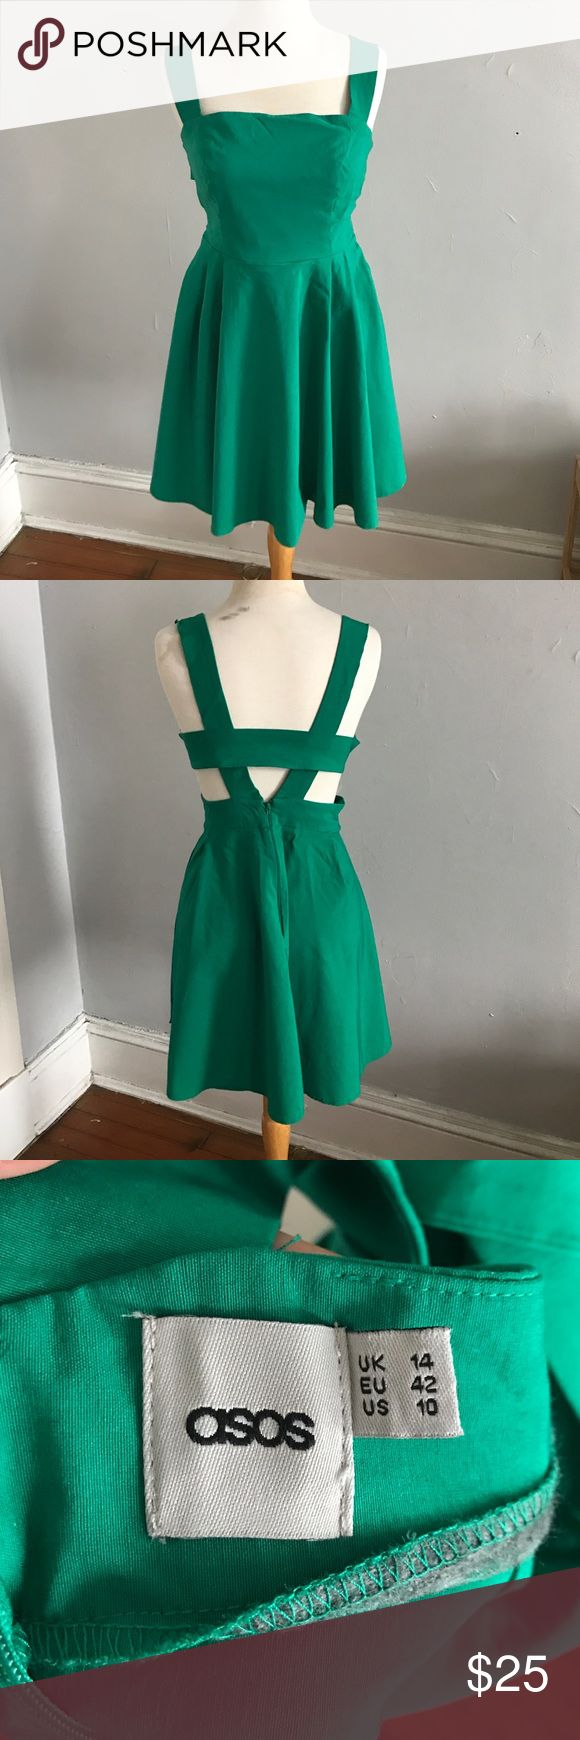 "ASOS Kelly green dress. Size 10. ASOS dress, Kelly green, has an open back with 3 straps, very comfortable fit. Length from waist to hem is 18"". Only worn once to a wedding. ASOS Dresses Midi"